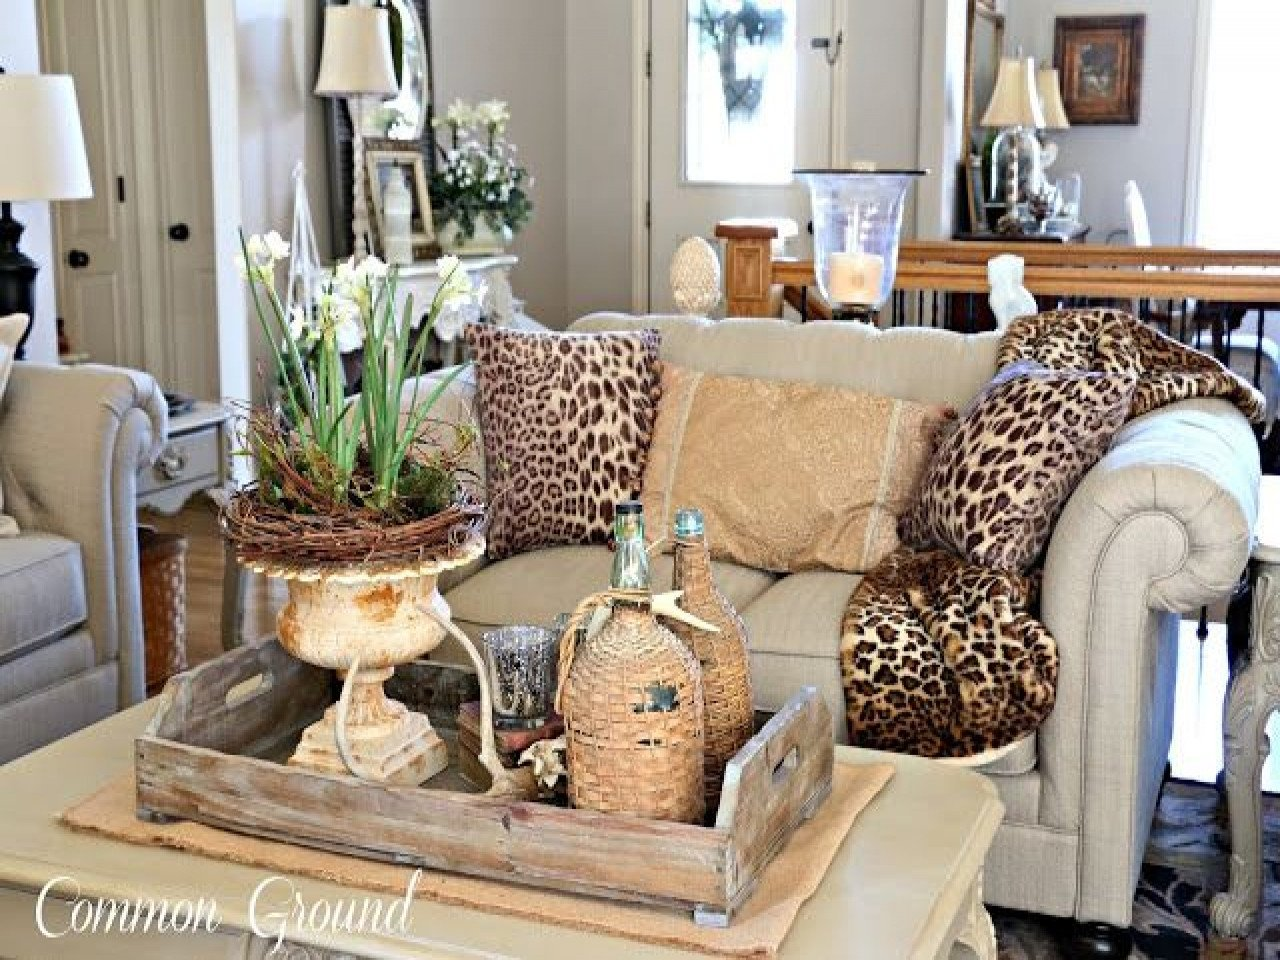 Leopard Decor for Living Room the Living Room and Leopard Print Pillows More Rooms